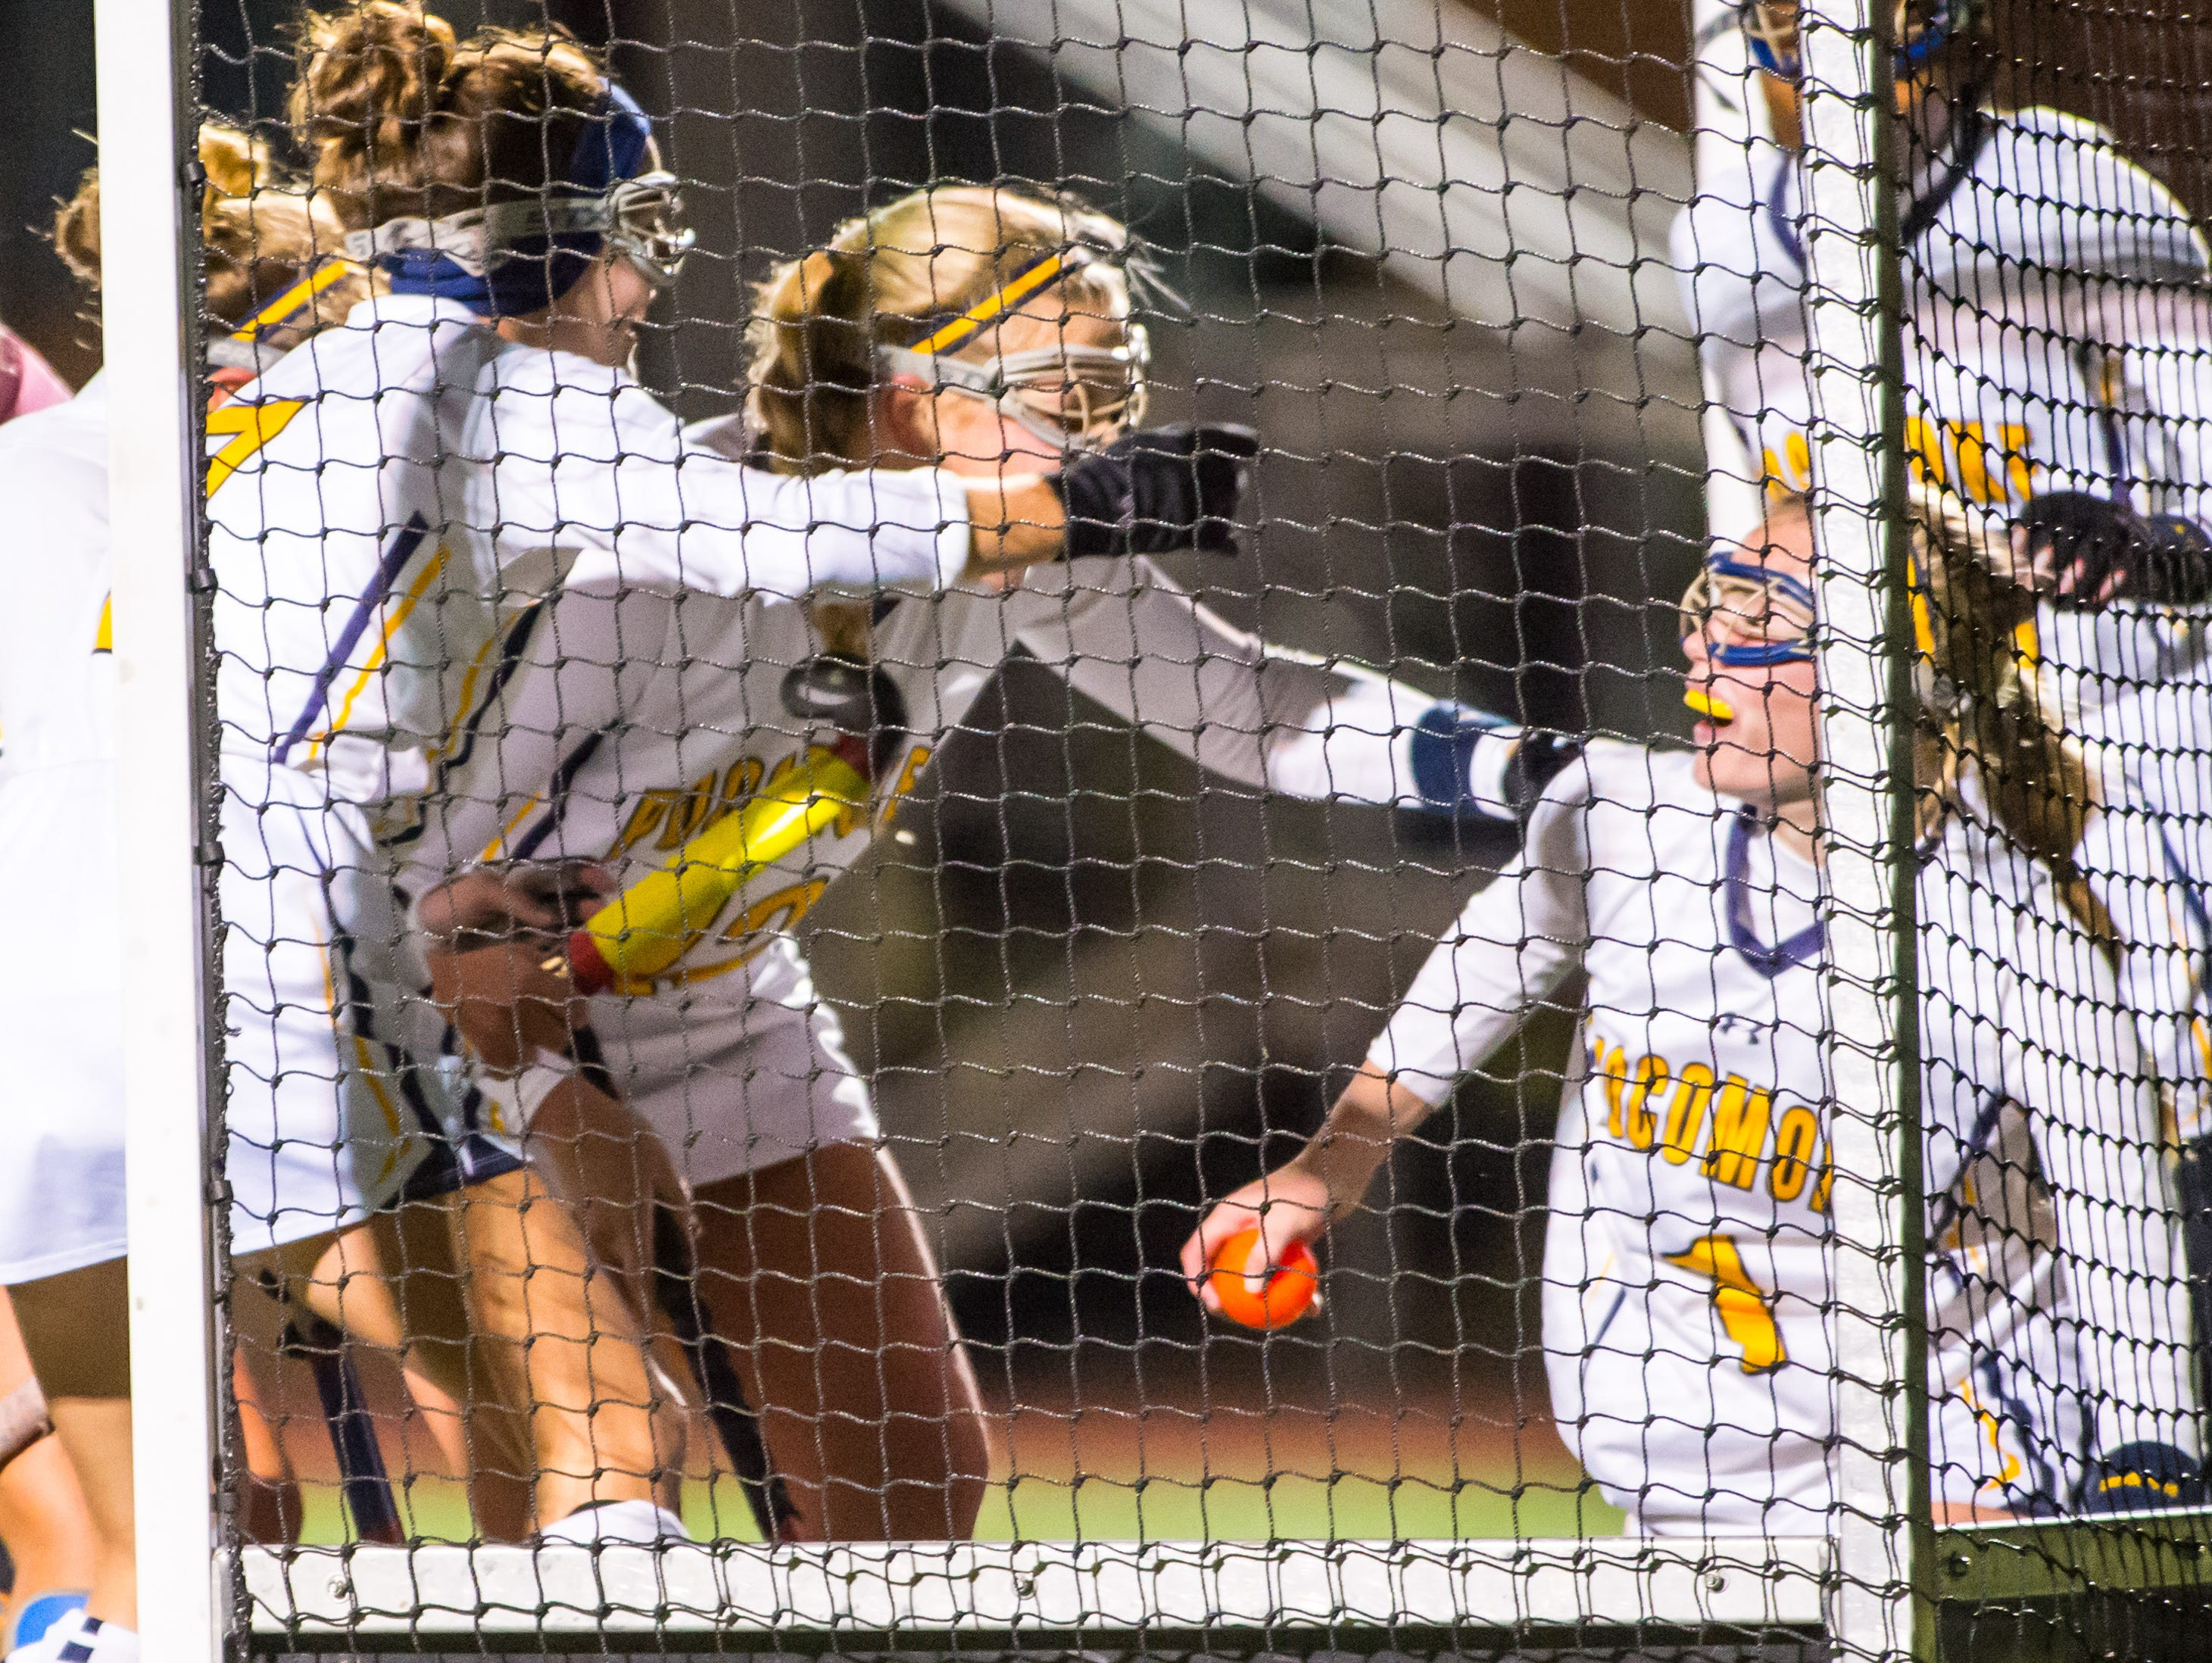 Pocomoke celebrates a goal by Mckenzie Beauchamp (1) against Patuxent in the MPSSSAA 1A State Finals on Saturday evening at Washington College in Chestertown.